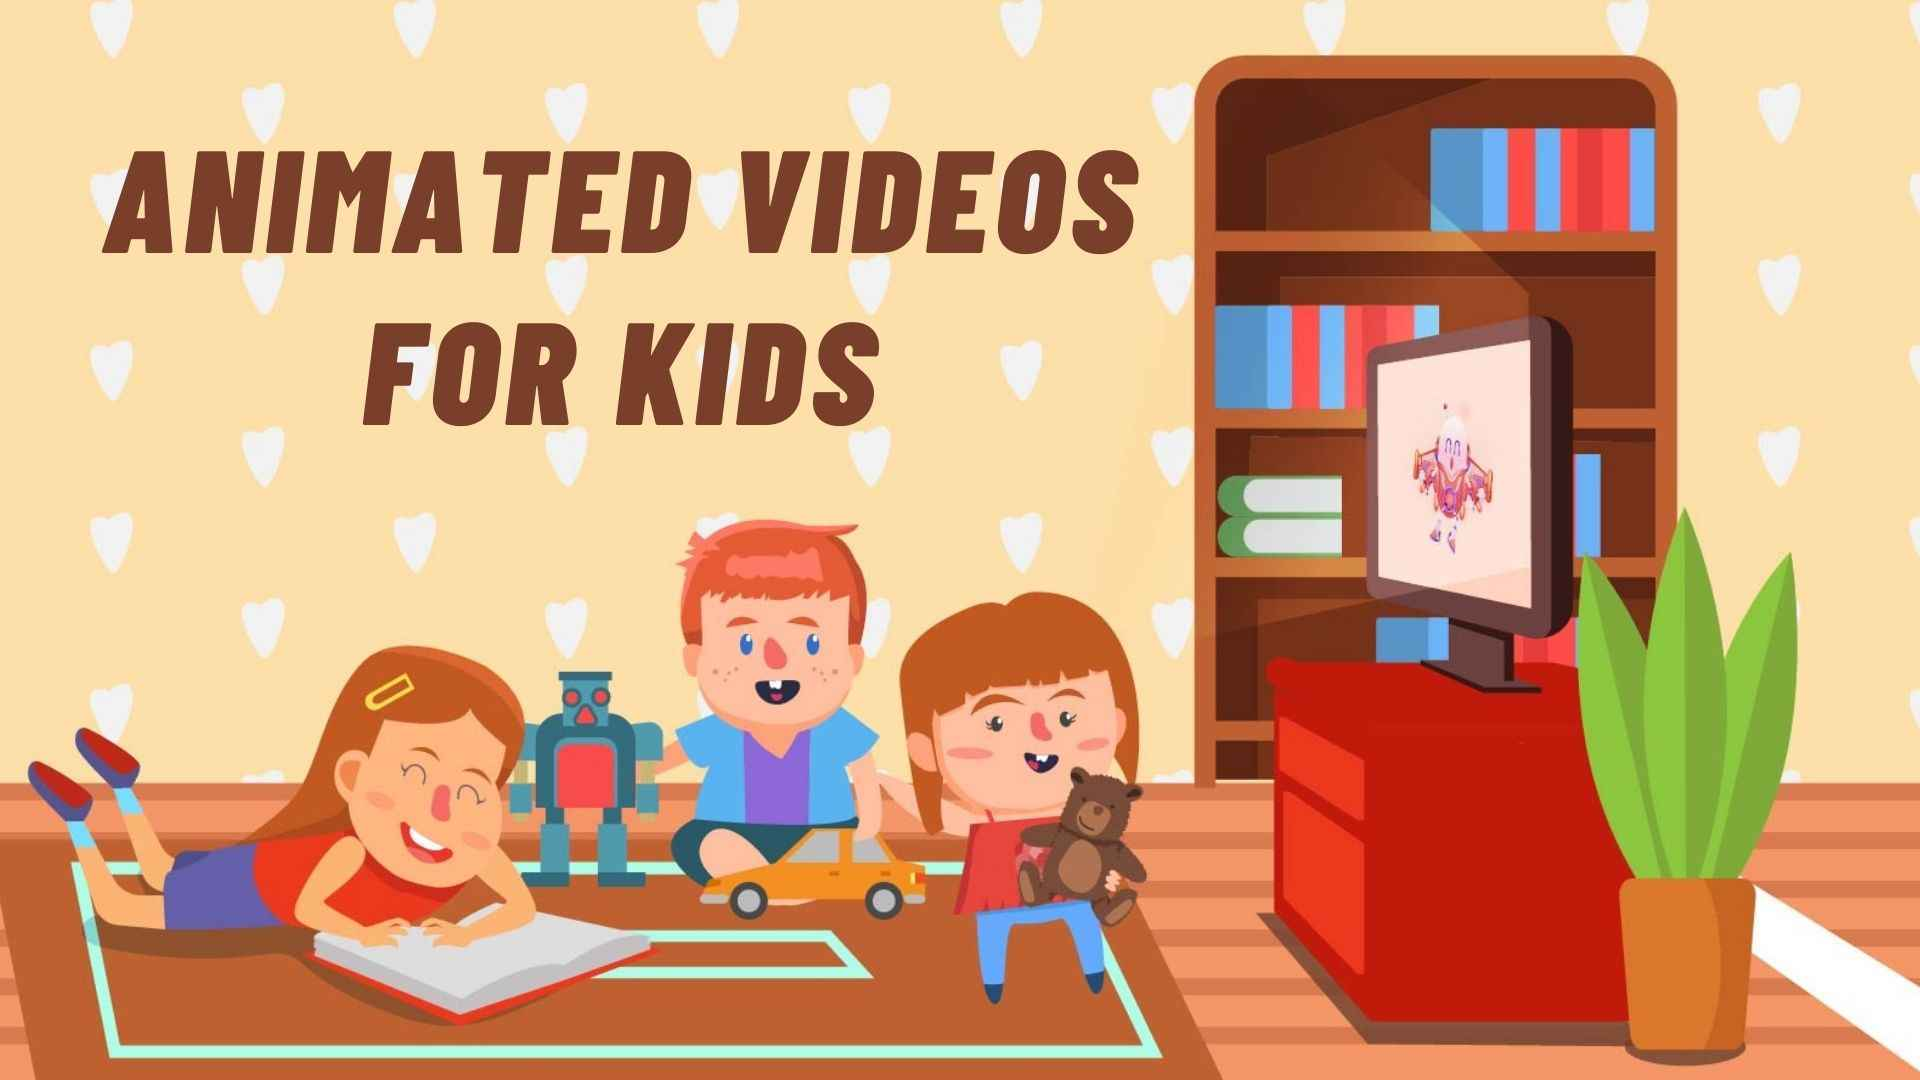 Animated Videos for Kids